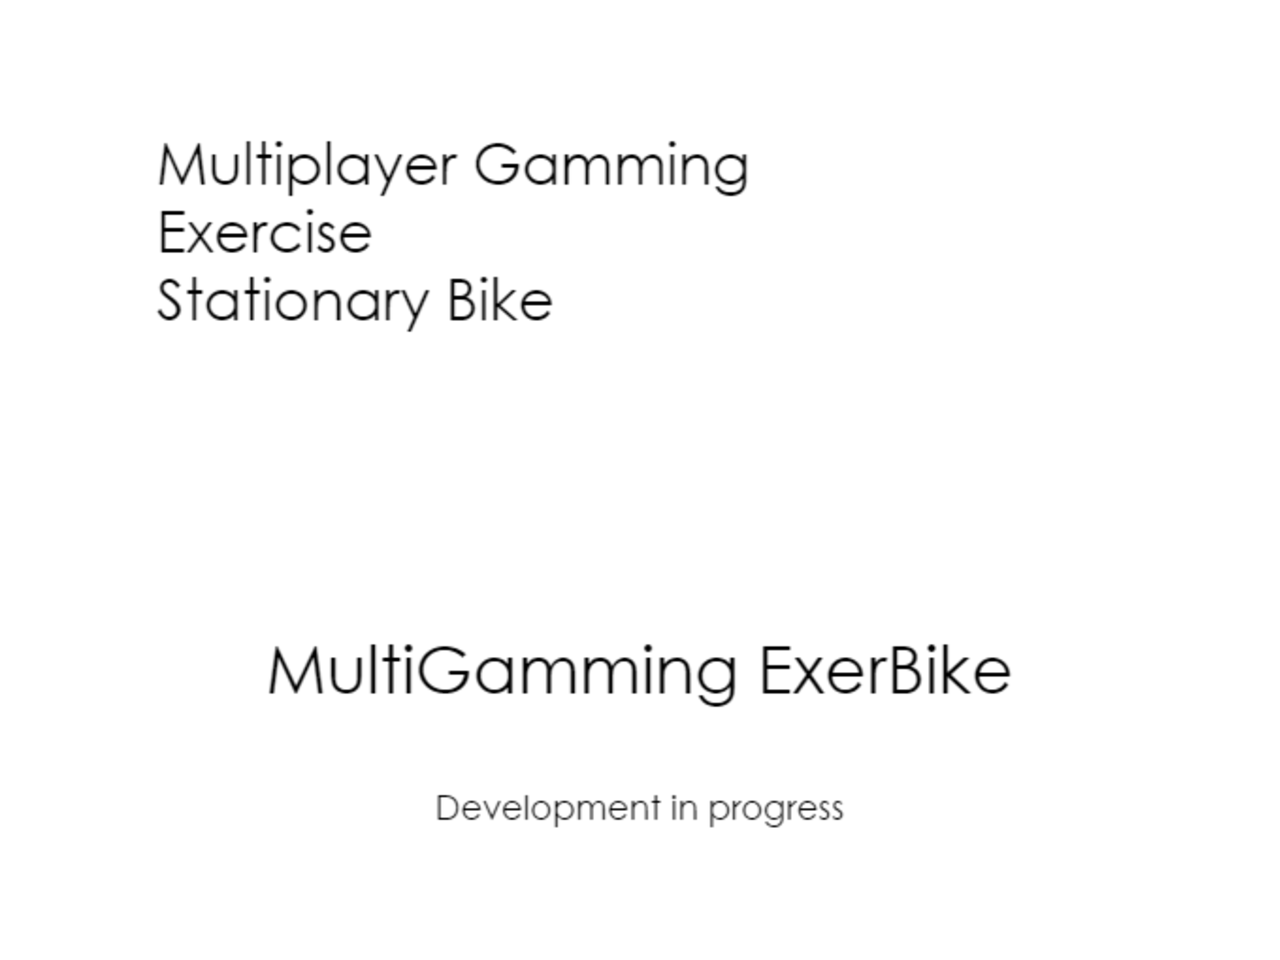 Multiplayer Gamming Exercise Stationary Bike